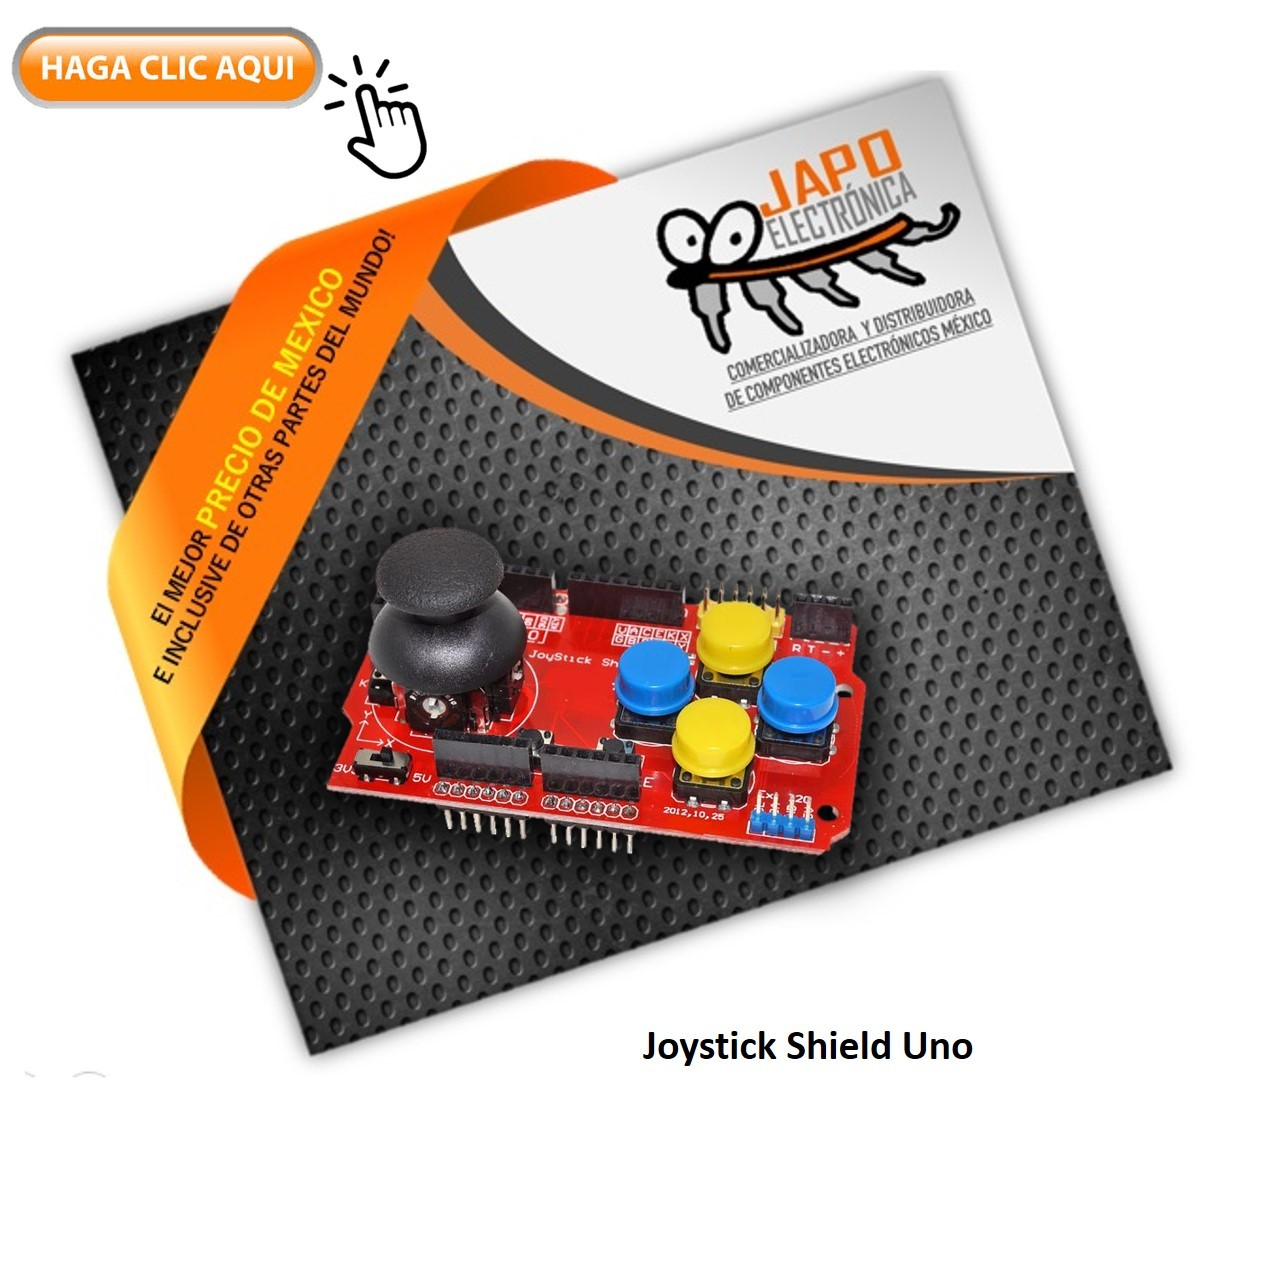 Joystick Shield Uno